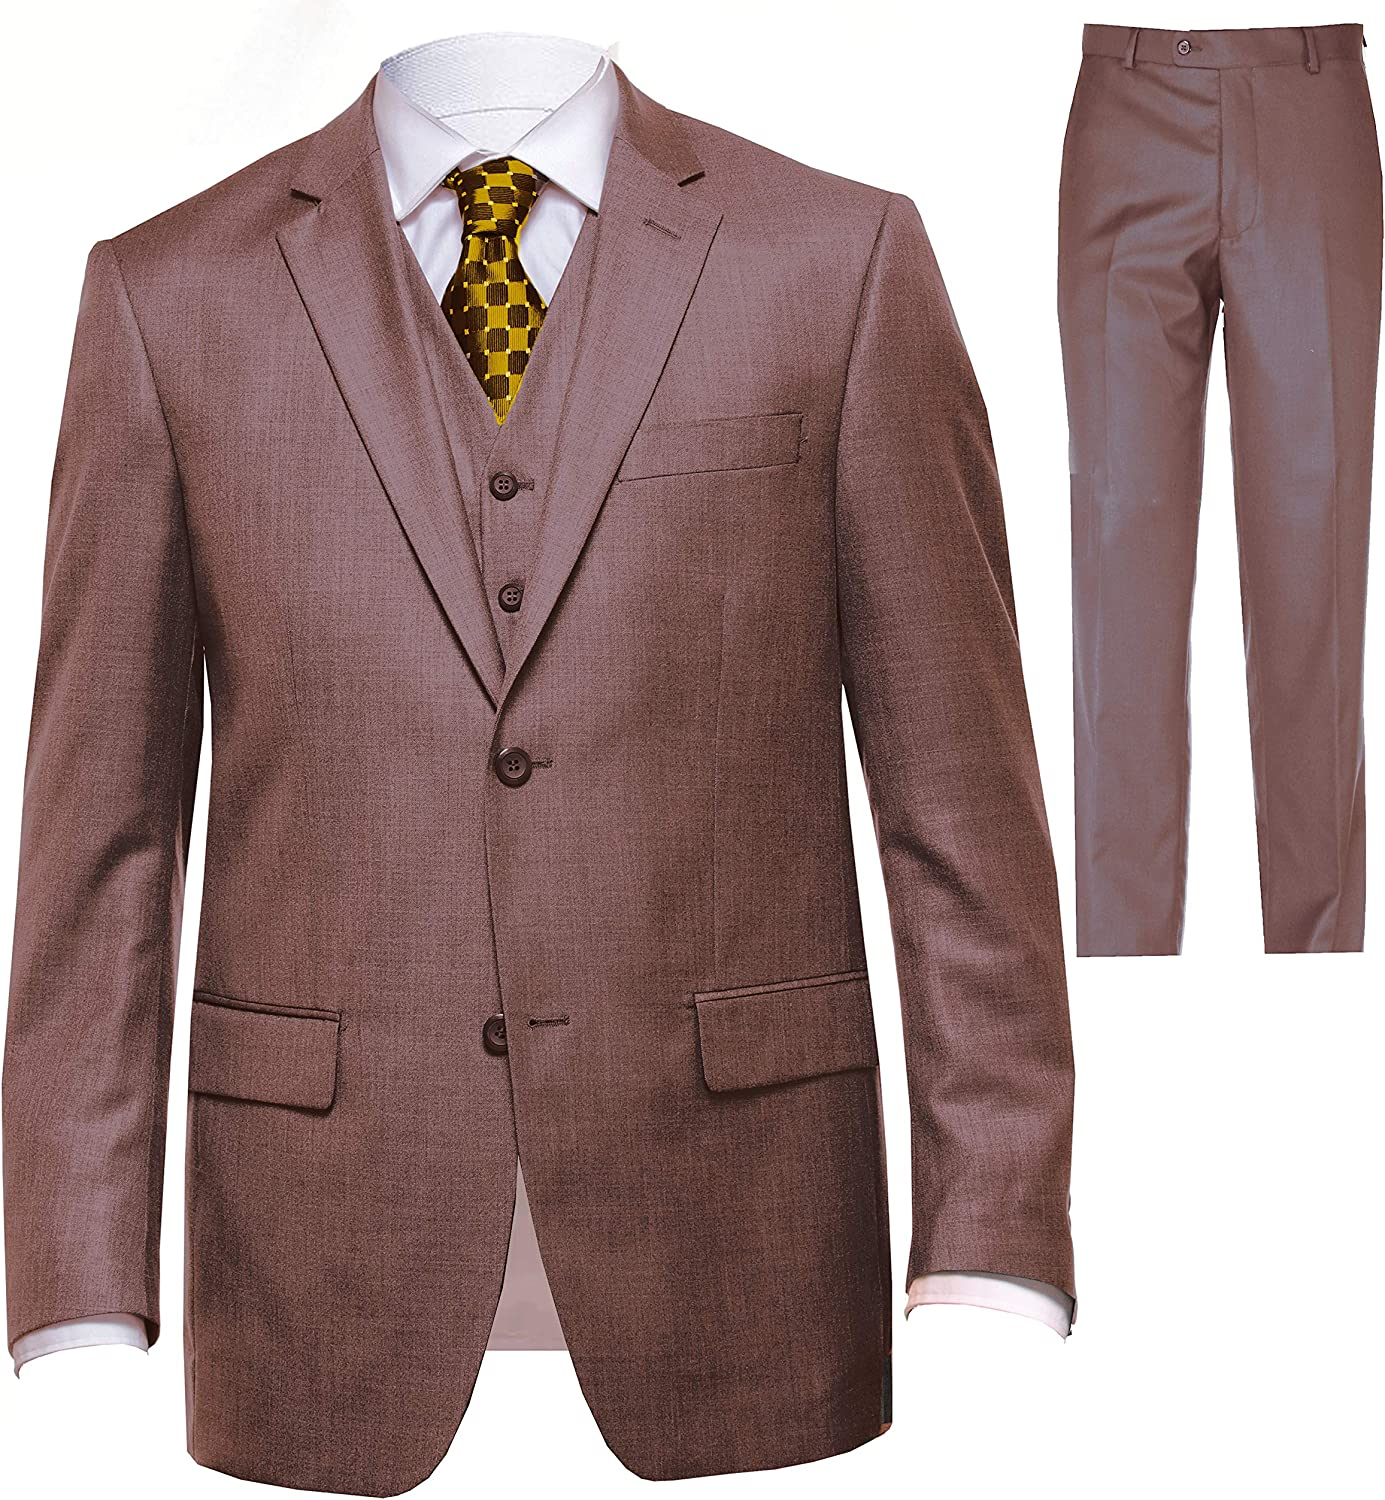 Mens Suit Classic Fit 3 Piece Suit for Men and 2 Piece Suit for Wedding Formal Regular fit Big and Tall